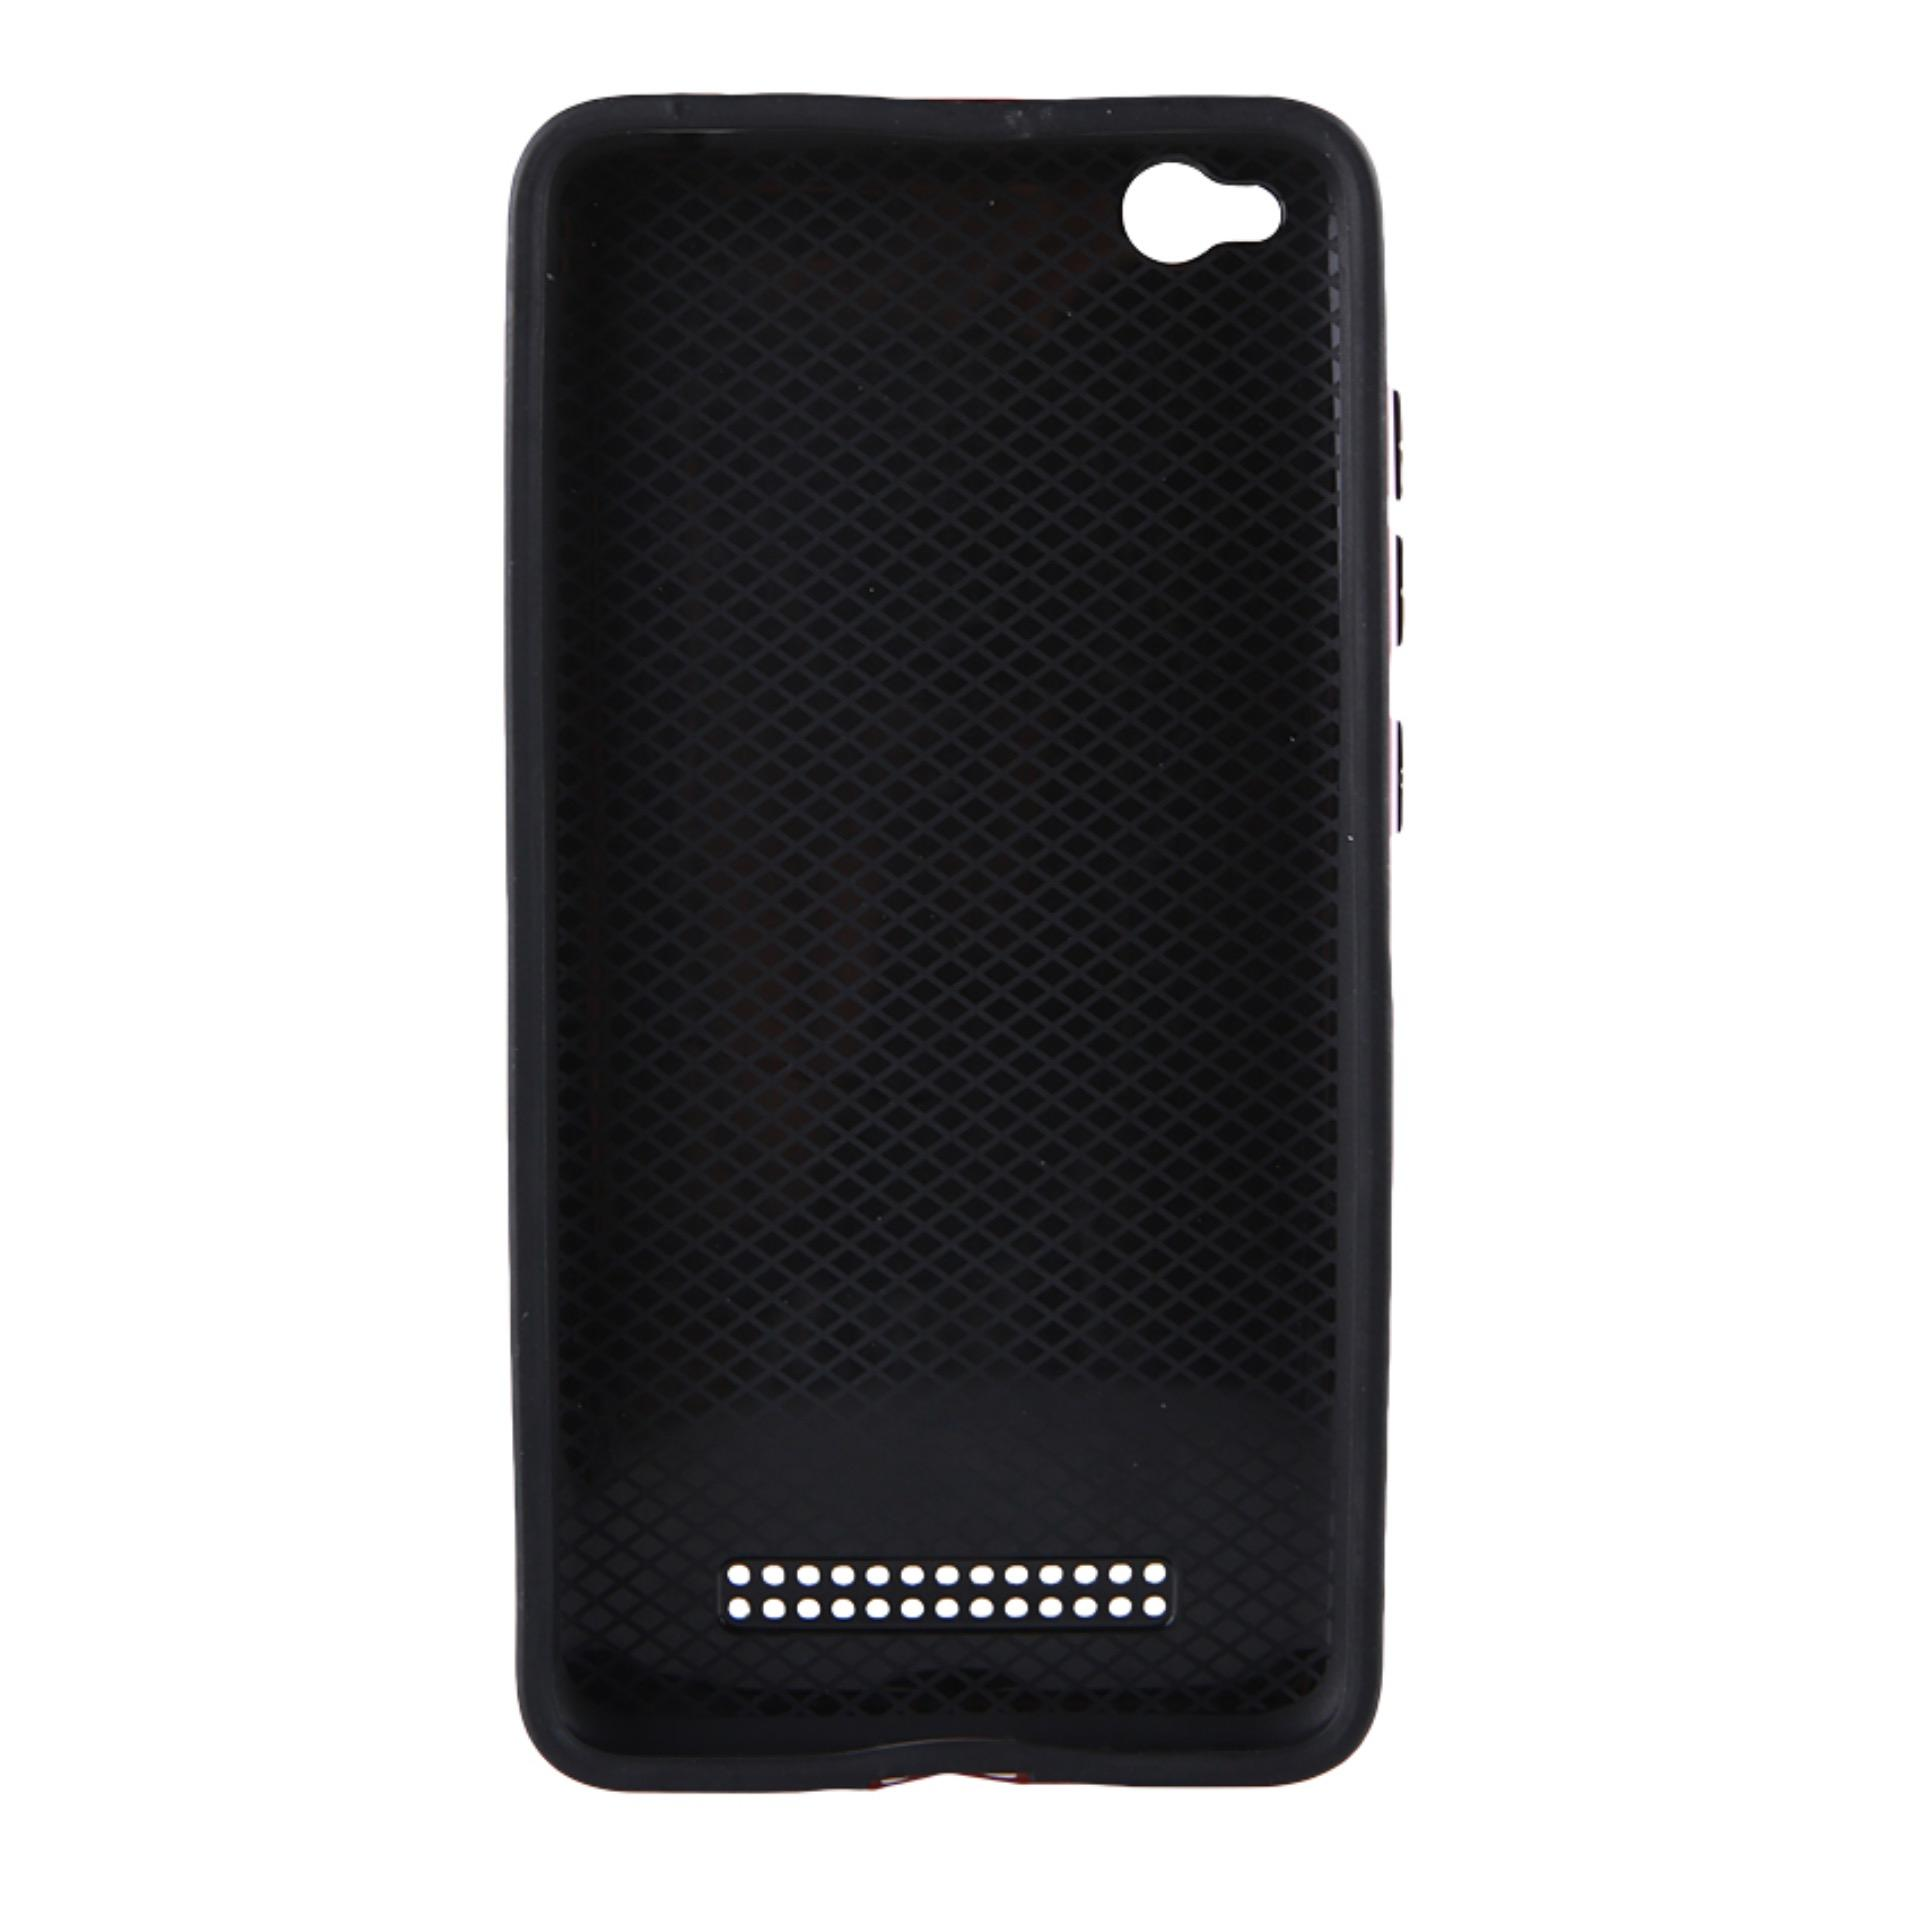 ... Case iPaky Carbon PC For Xiaomi Redmi 4a Neo Hybrid Series ...